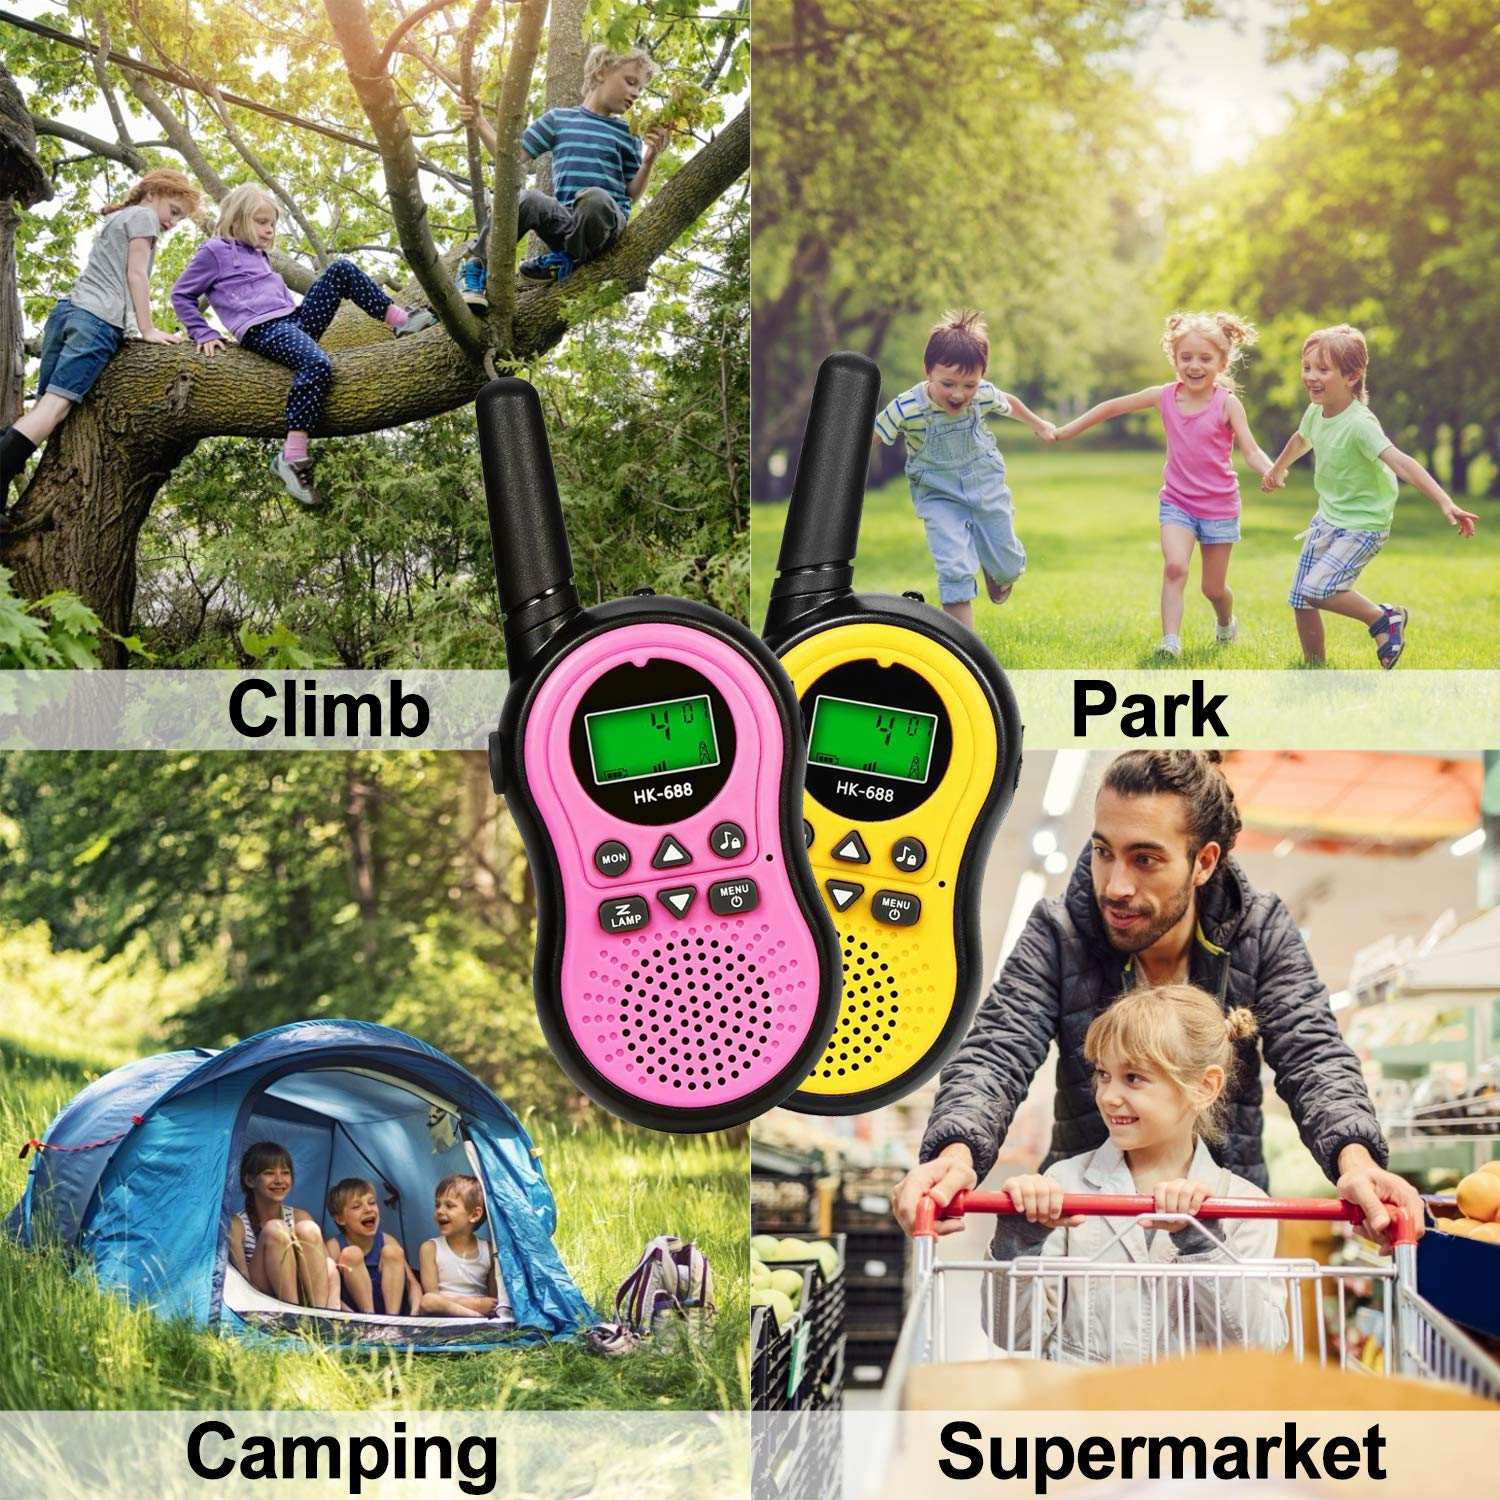 ZOFUNNY 4 Pack Kids Walkie Talkies for Boys Girls Rechargeable Radios 2 Way Long Range 22 Channel Walkie Talkies with Flashlight FRS Radio Toys Outdoor Adventure Camping Hiking Holiday Birthday Gifts by ZOFUNNY (Image #5)